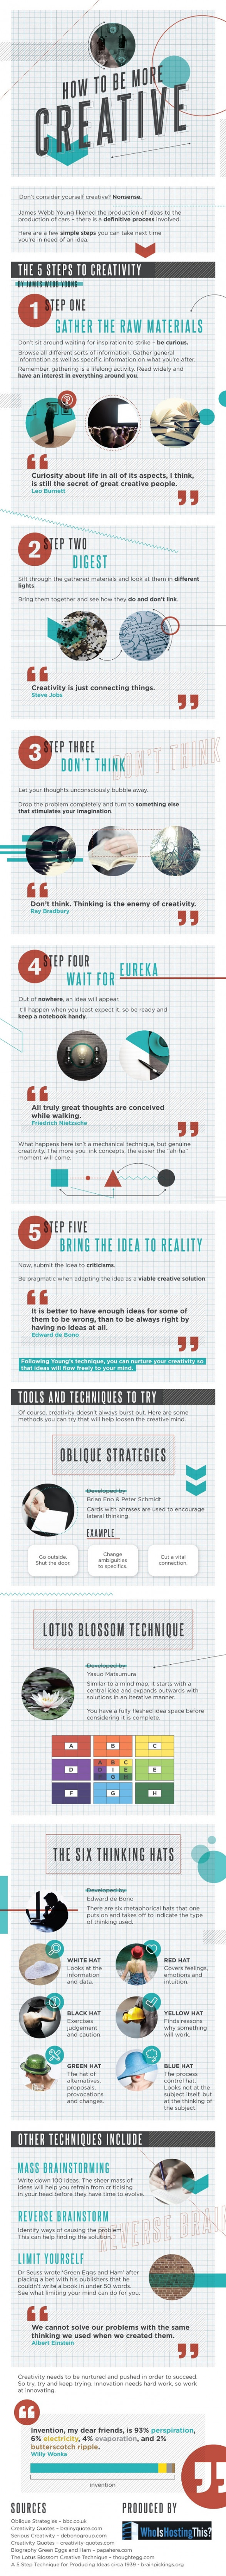 How to Be More Creative [Infographic]